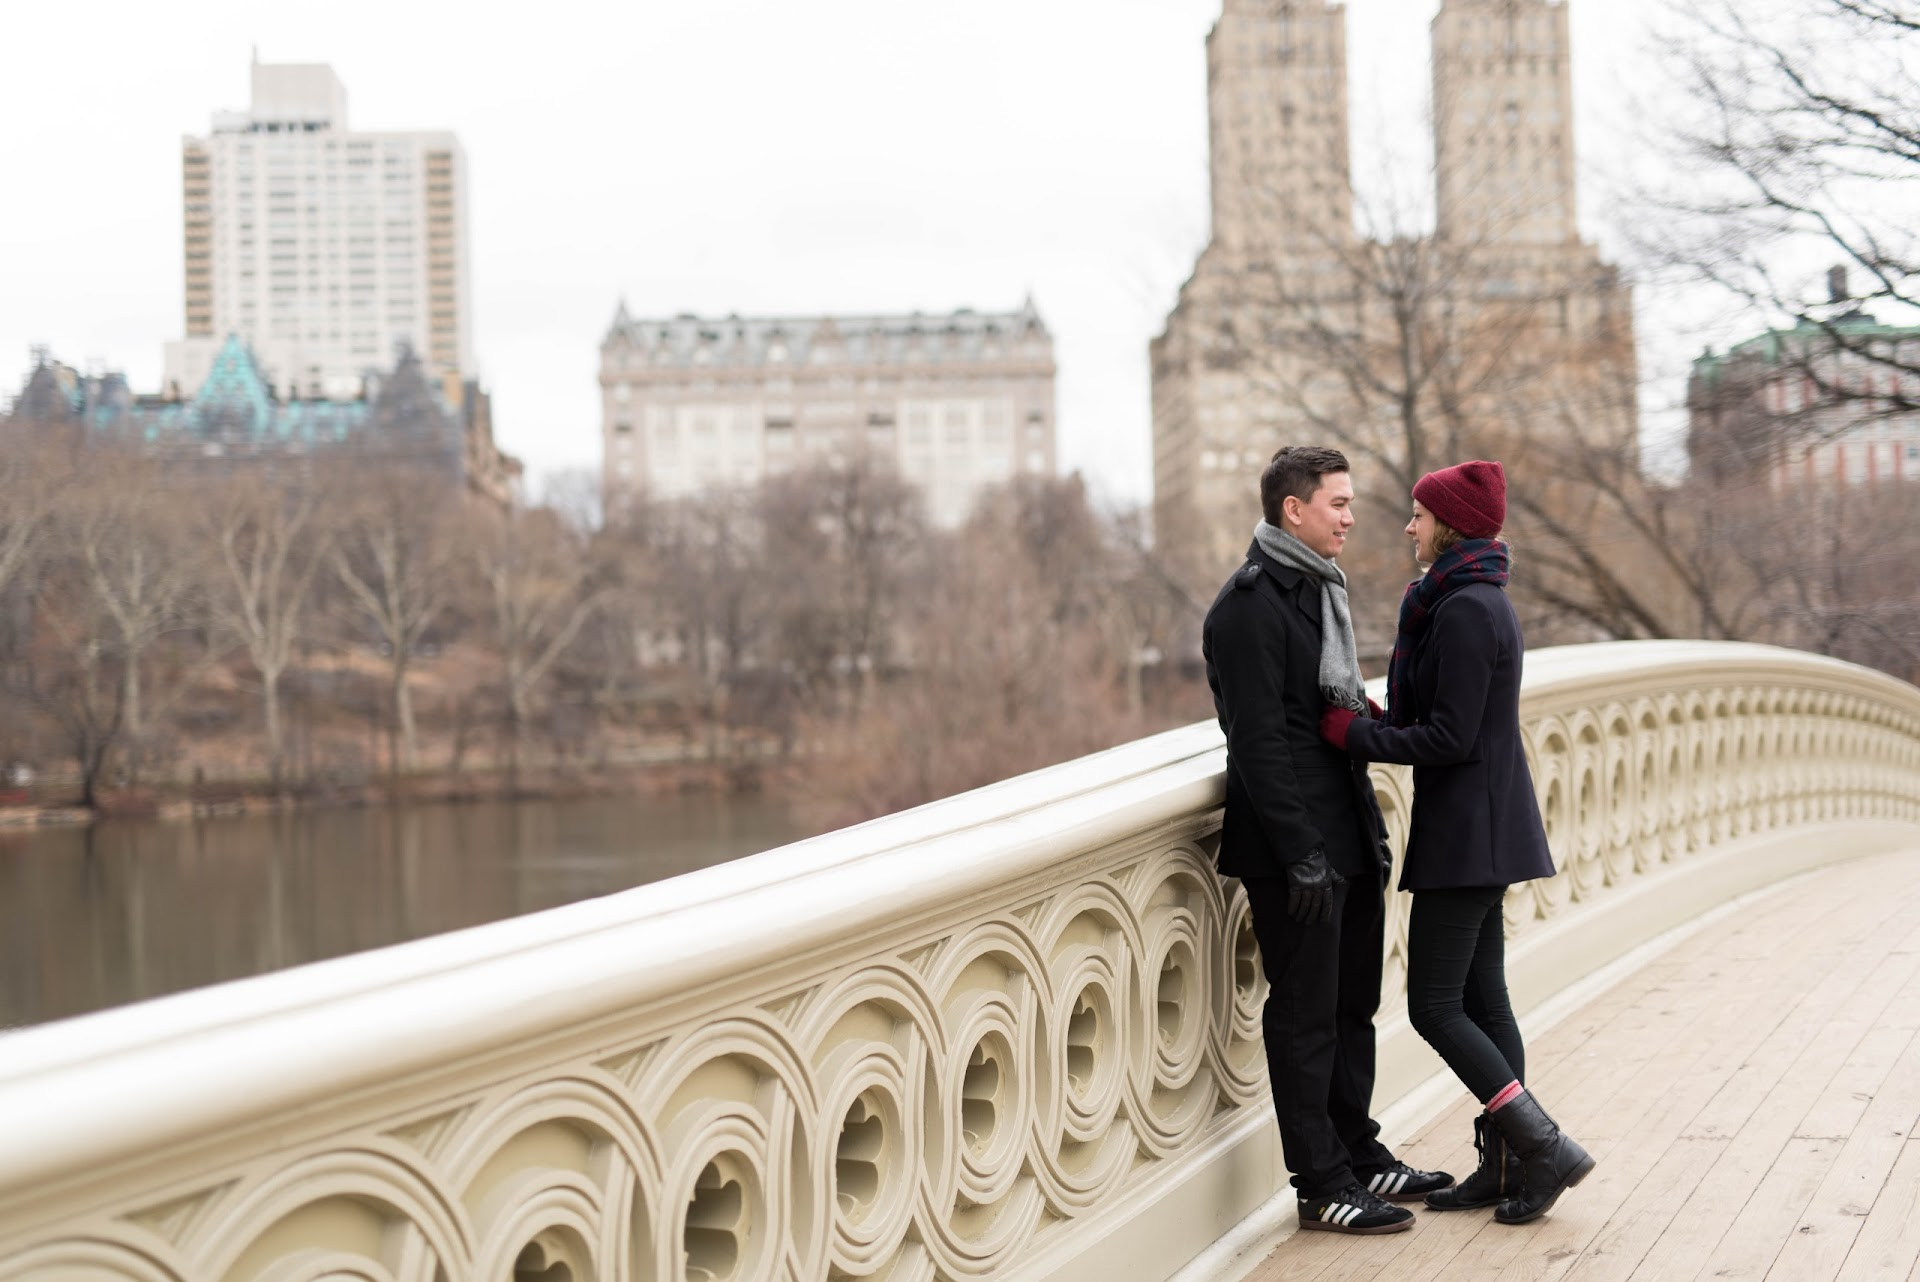 central park, engagements, couple, photography, bridge, winter, nyc, new york, manhattan architecture, skyline, winter engagement photo outfits, poses, ideas